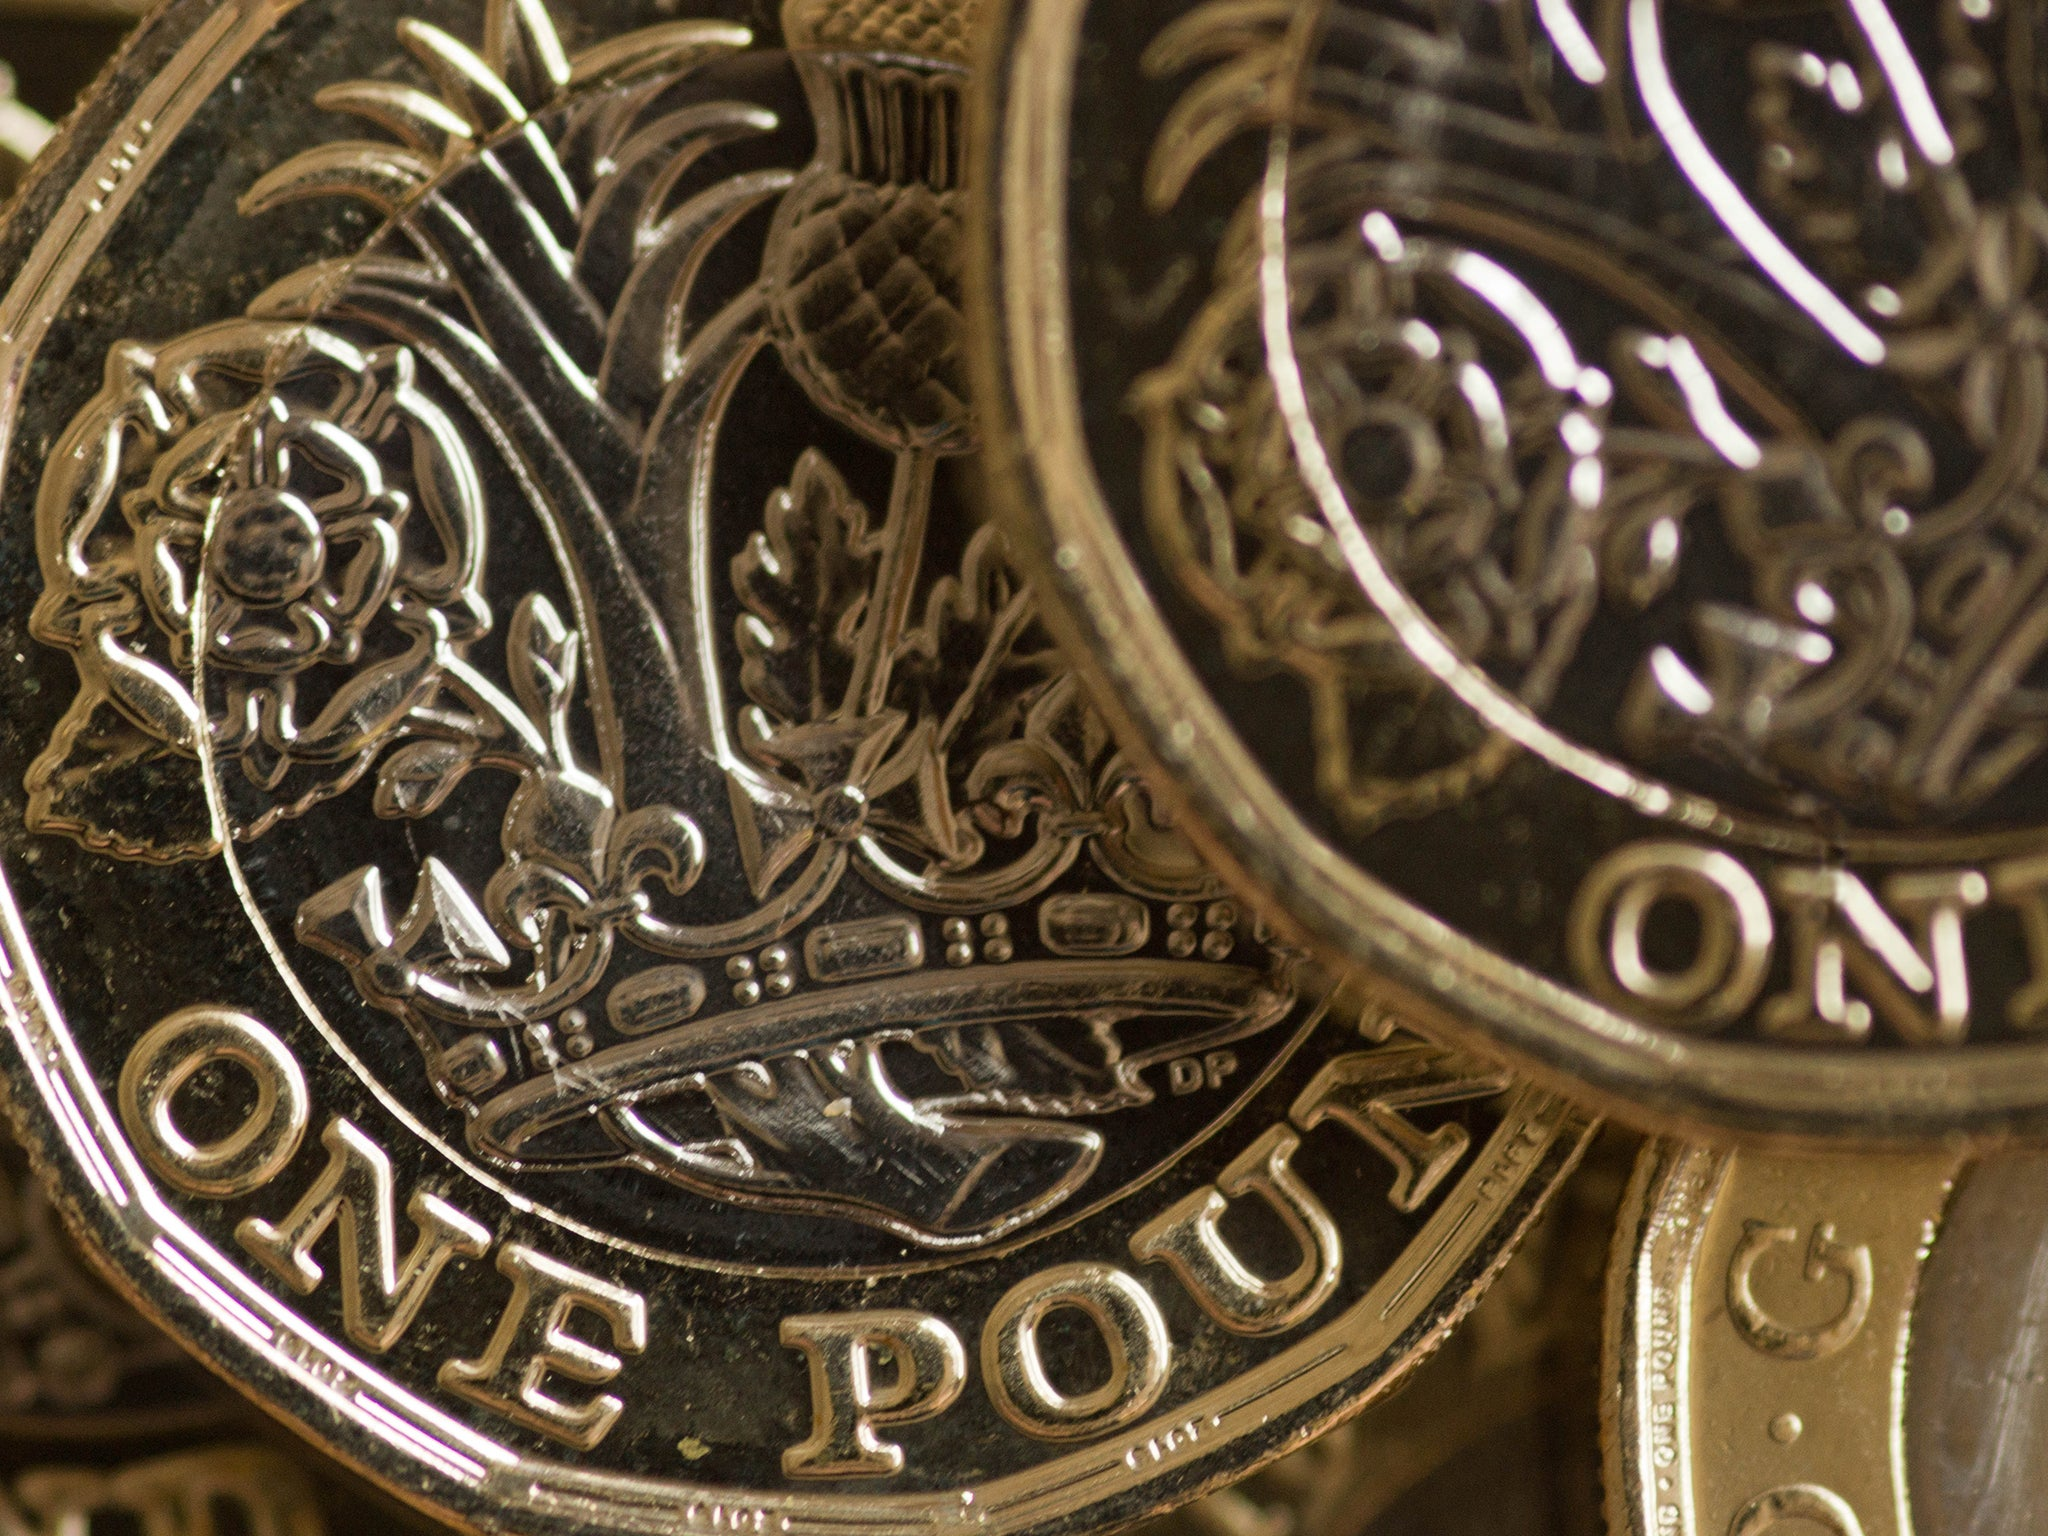 More Britons positive about personal finances now than last year